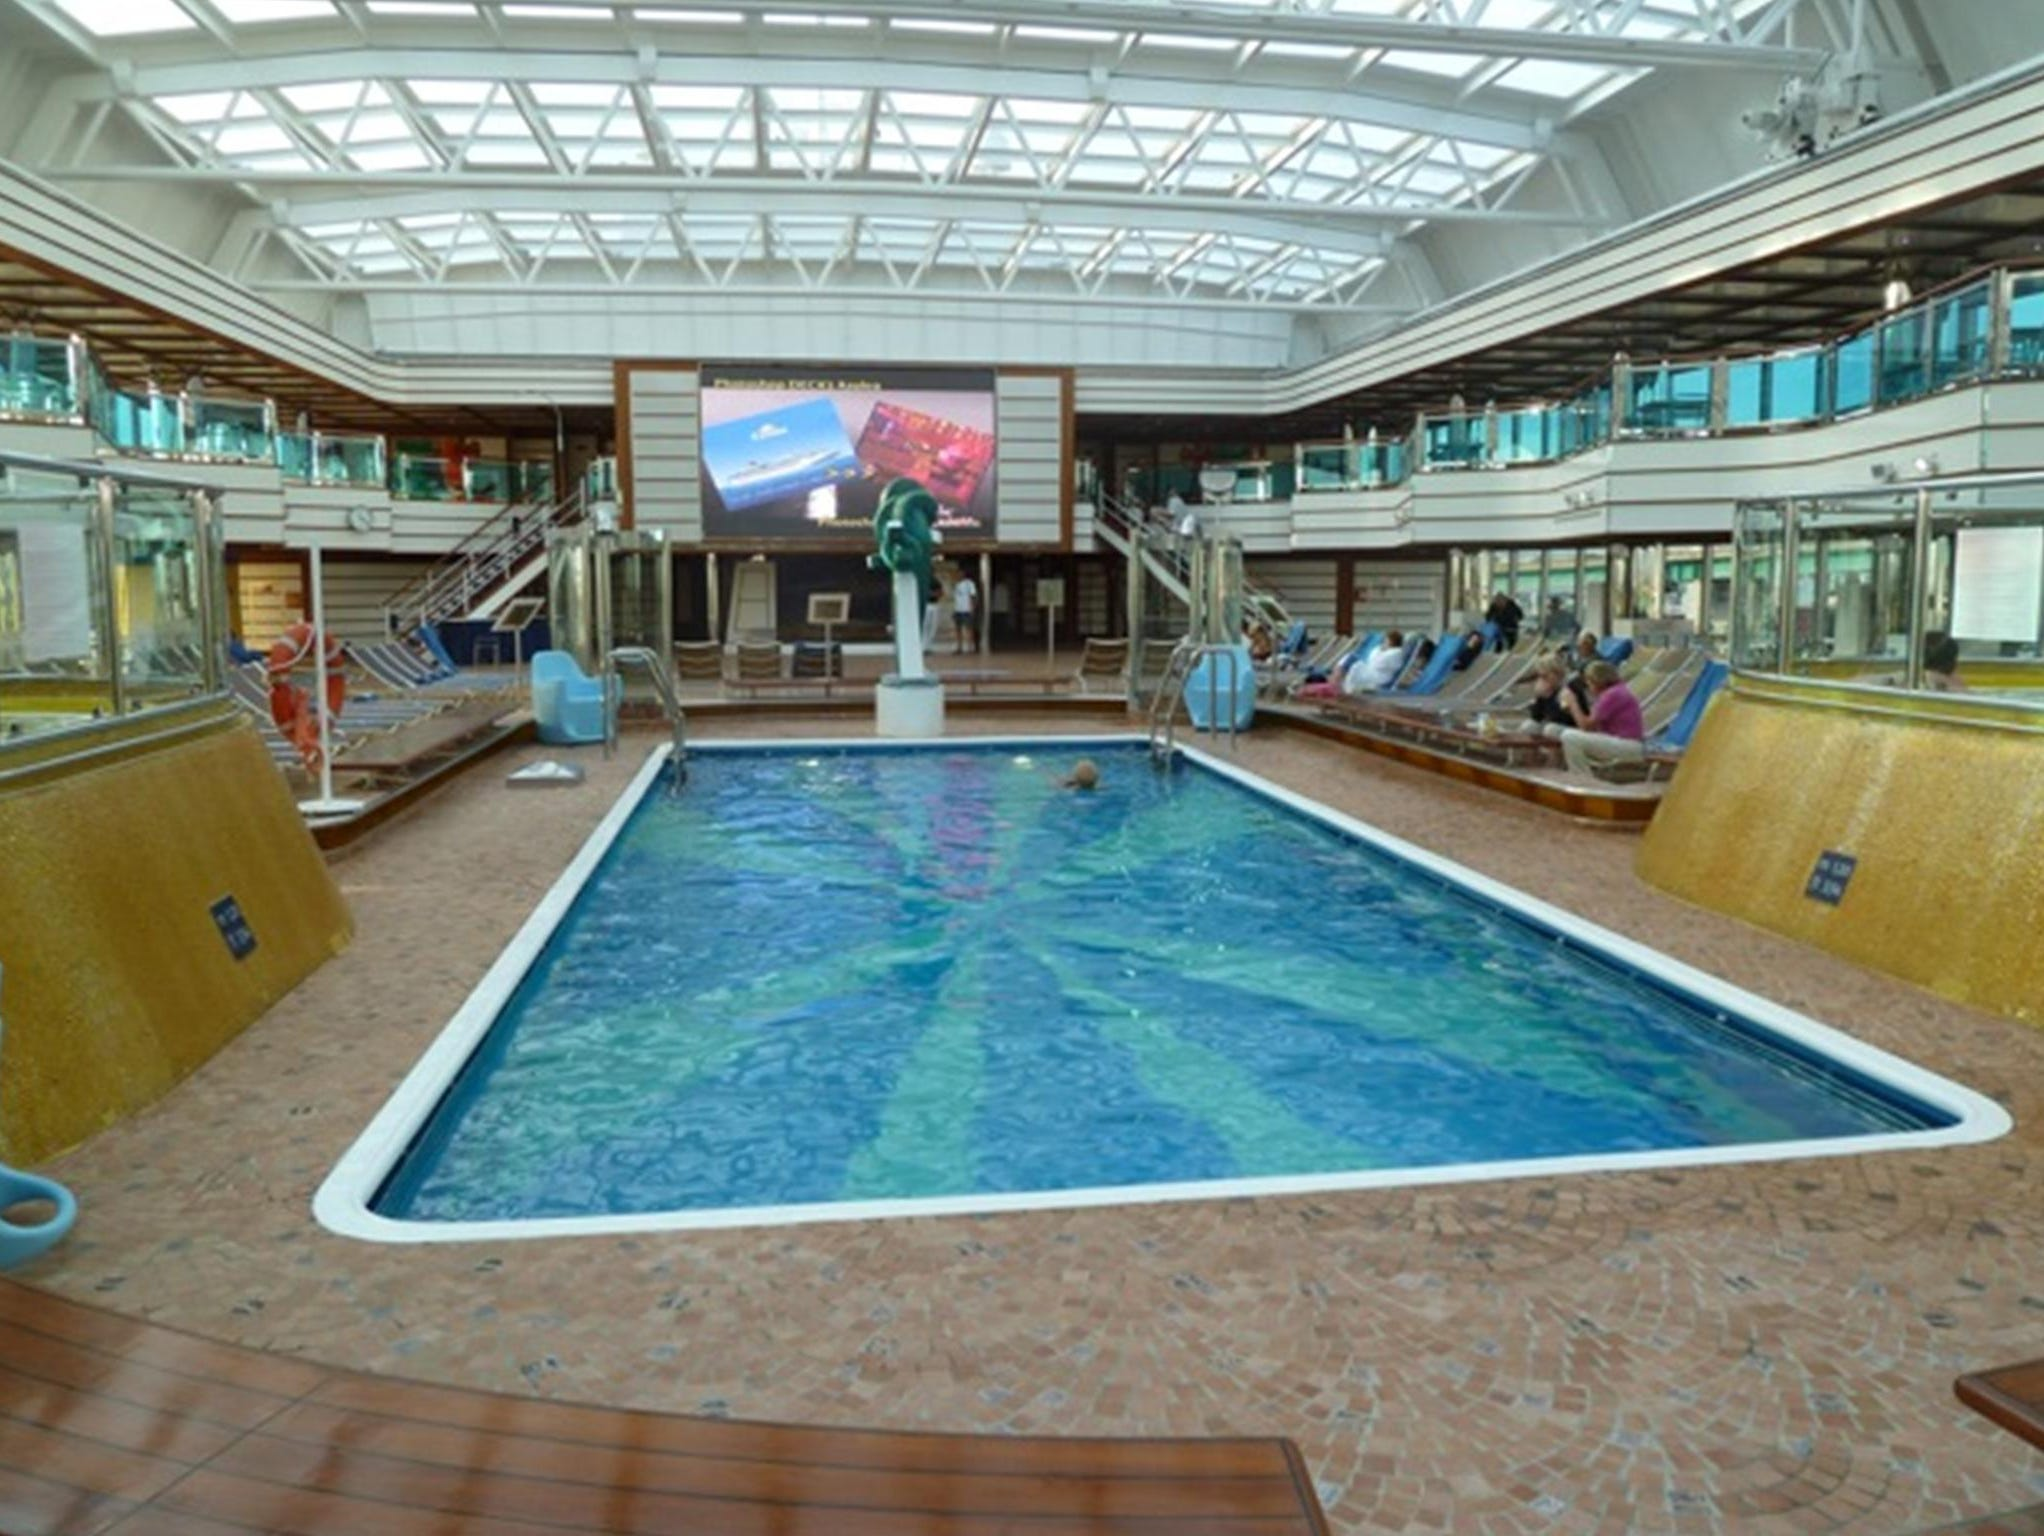 """The """"all weather"""" Lido Azzurro on Orchidea Deck (9) not only is home to the ship's largest pool but also has two Jacuzzis and an oversized LED screen that broadcasts movies, news, videos and sports events."""